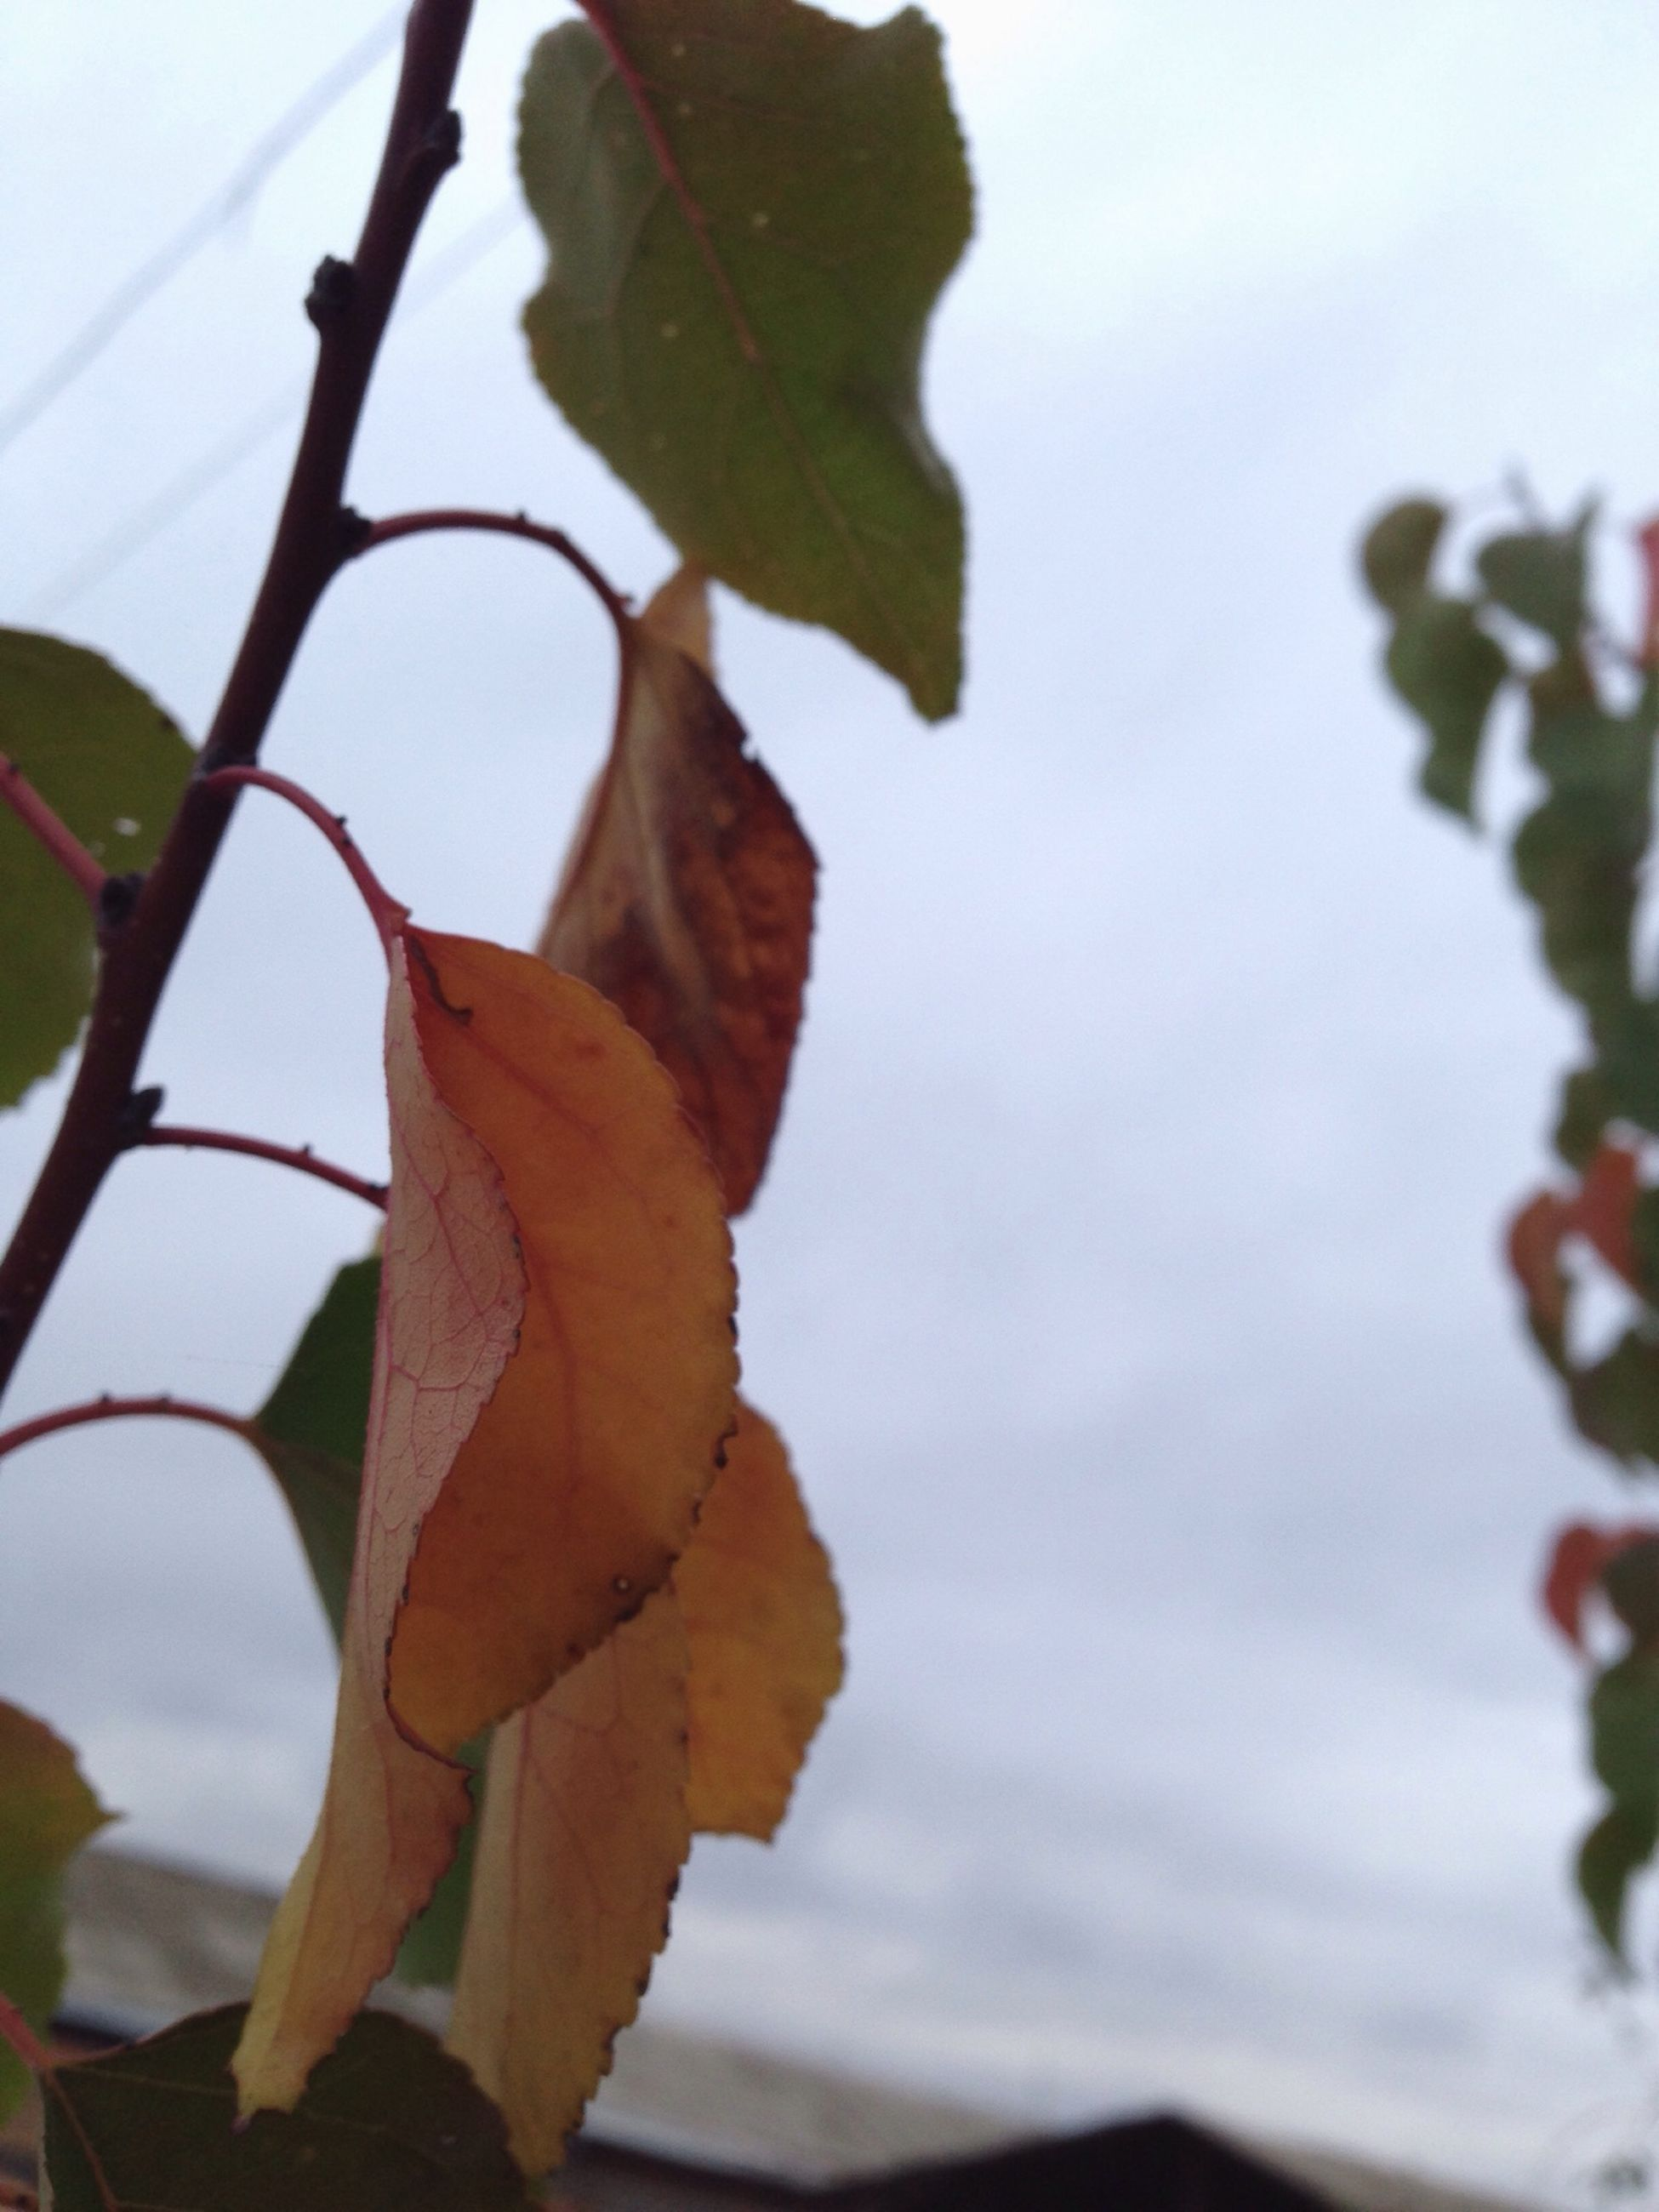 leaf, focus on foreground, close-up, growth, nature, sky, leaf vein, season, fragility, low angle view, autumn, branch, leaves, beauty in nature, plant, change, tree, freshness, day, outdoors